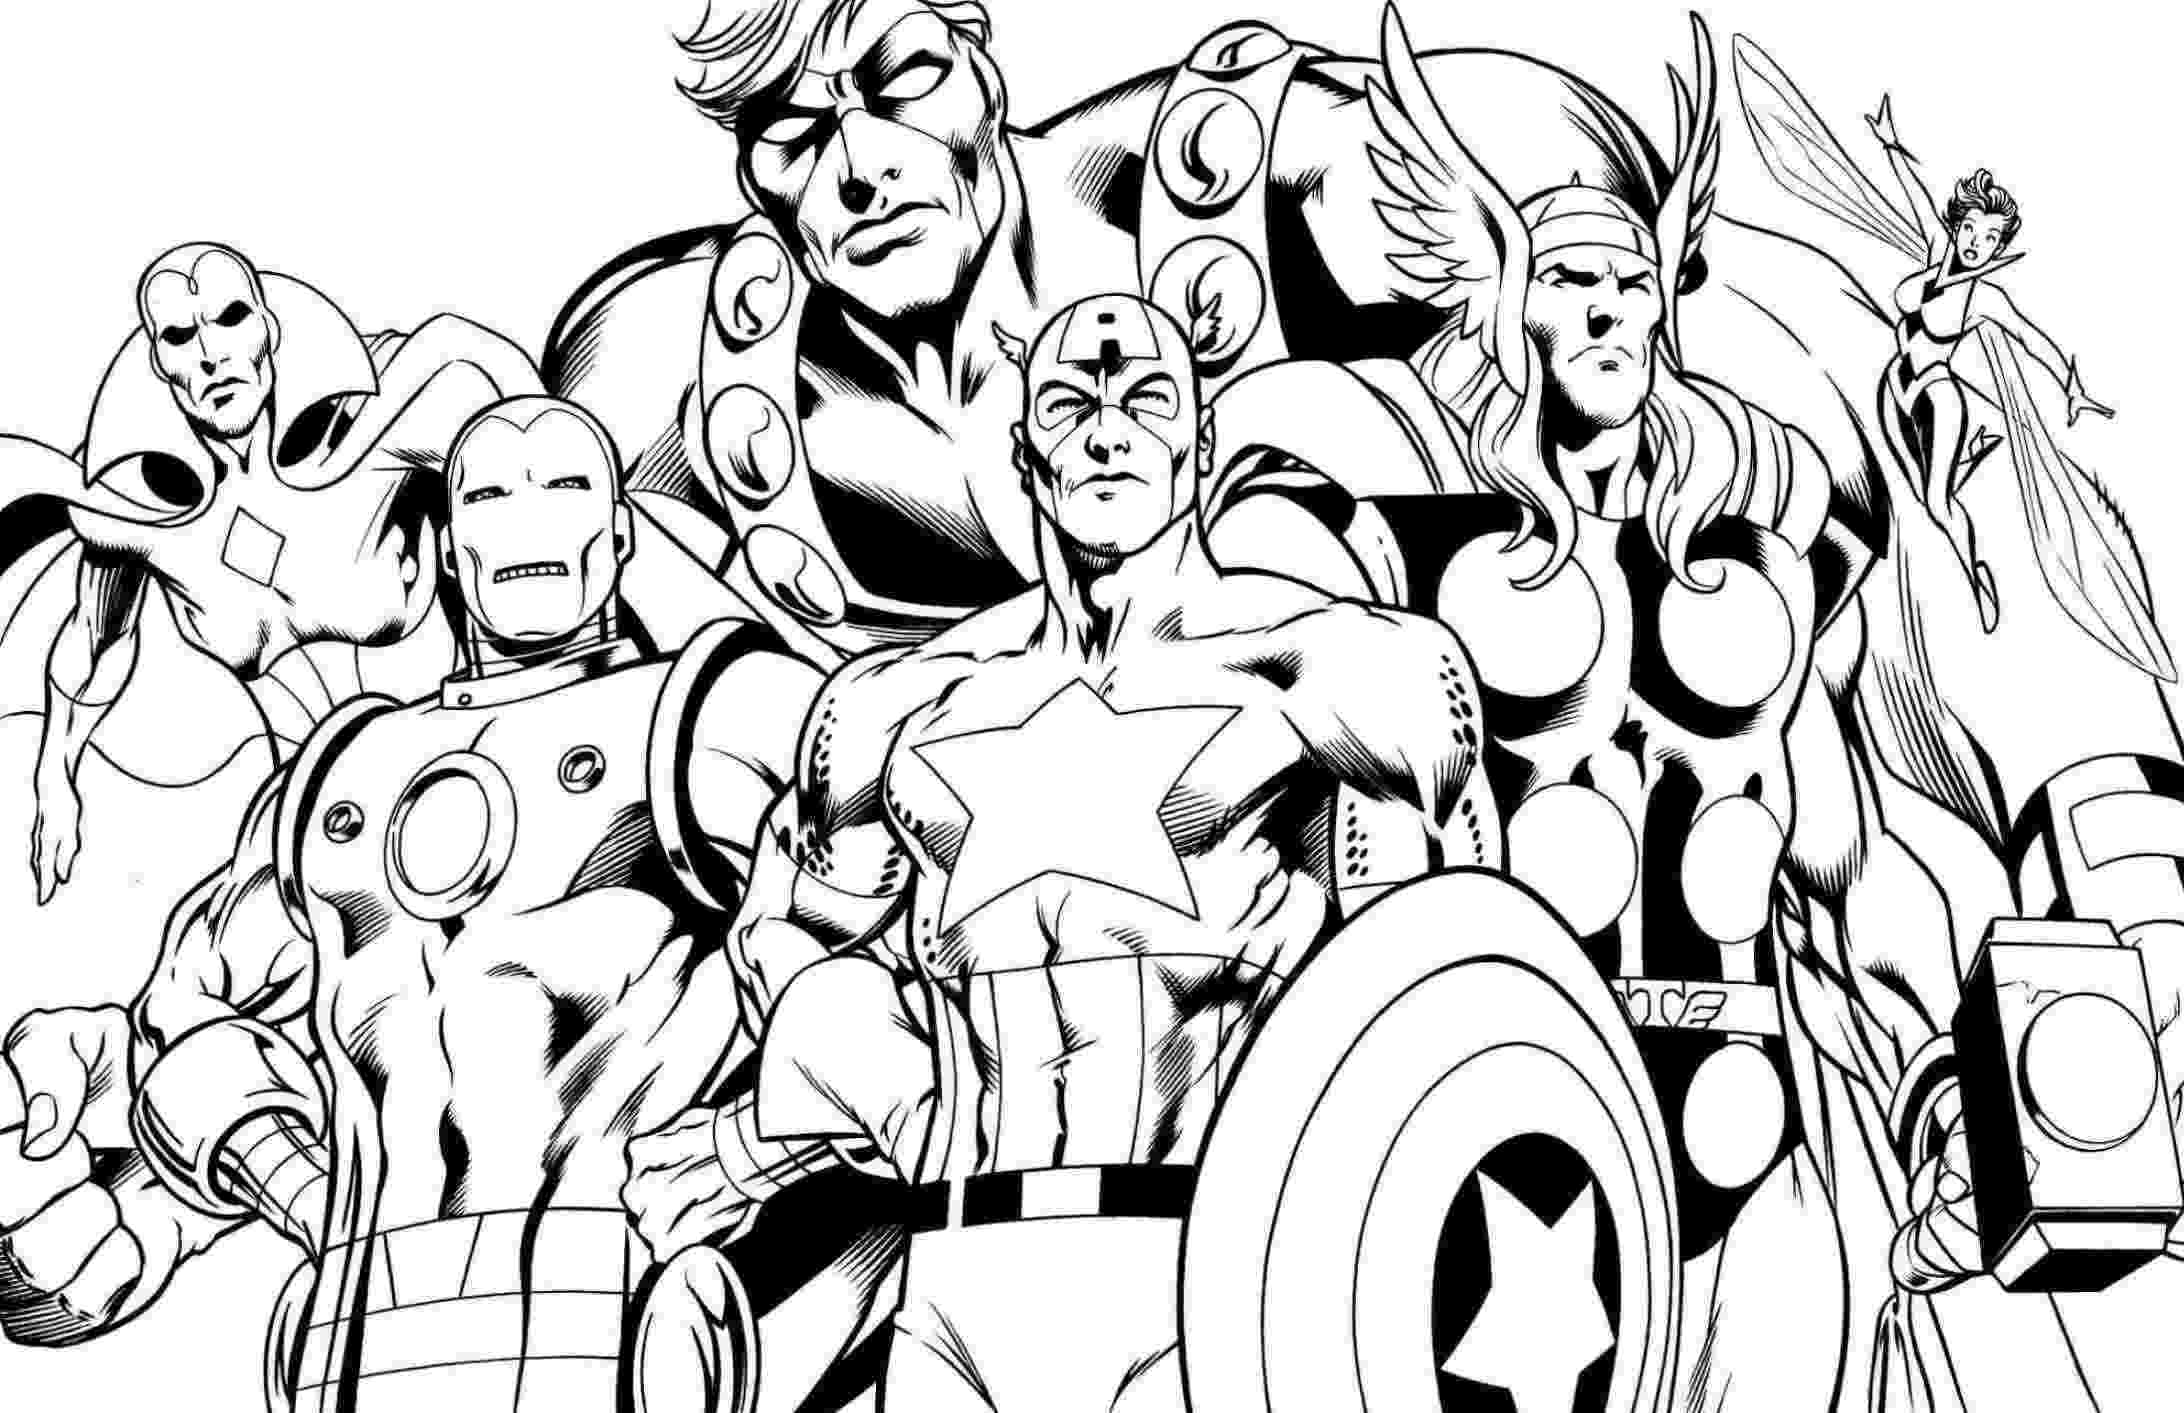 superhero coloring page superhero coloring pages coloring pages free premium superhero coloring page